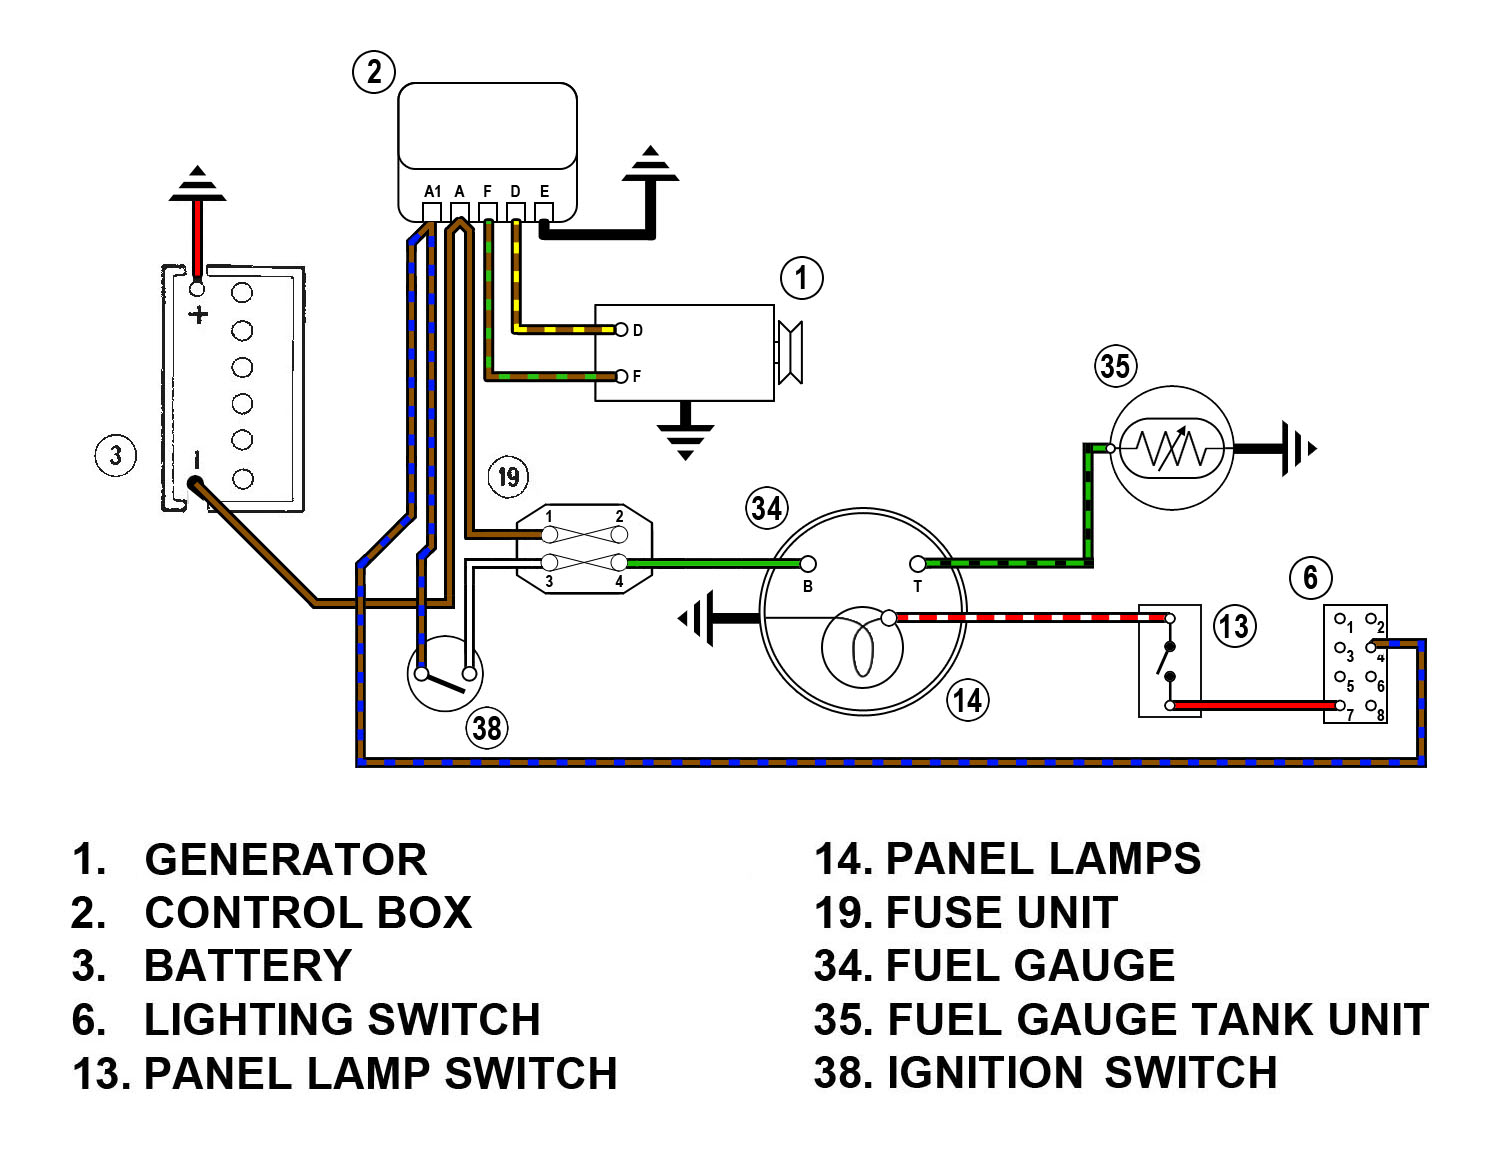 FuelGaugeWiringSpMkII_MGMkI spridgetguru com tech index fuel gauge wiring diagram autometer fuel gauge wiring diagram at cos-gaming.co